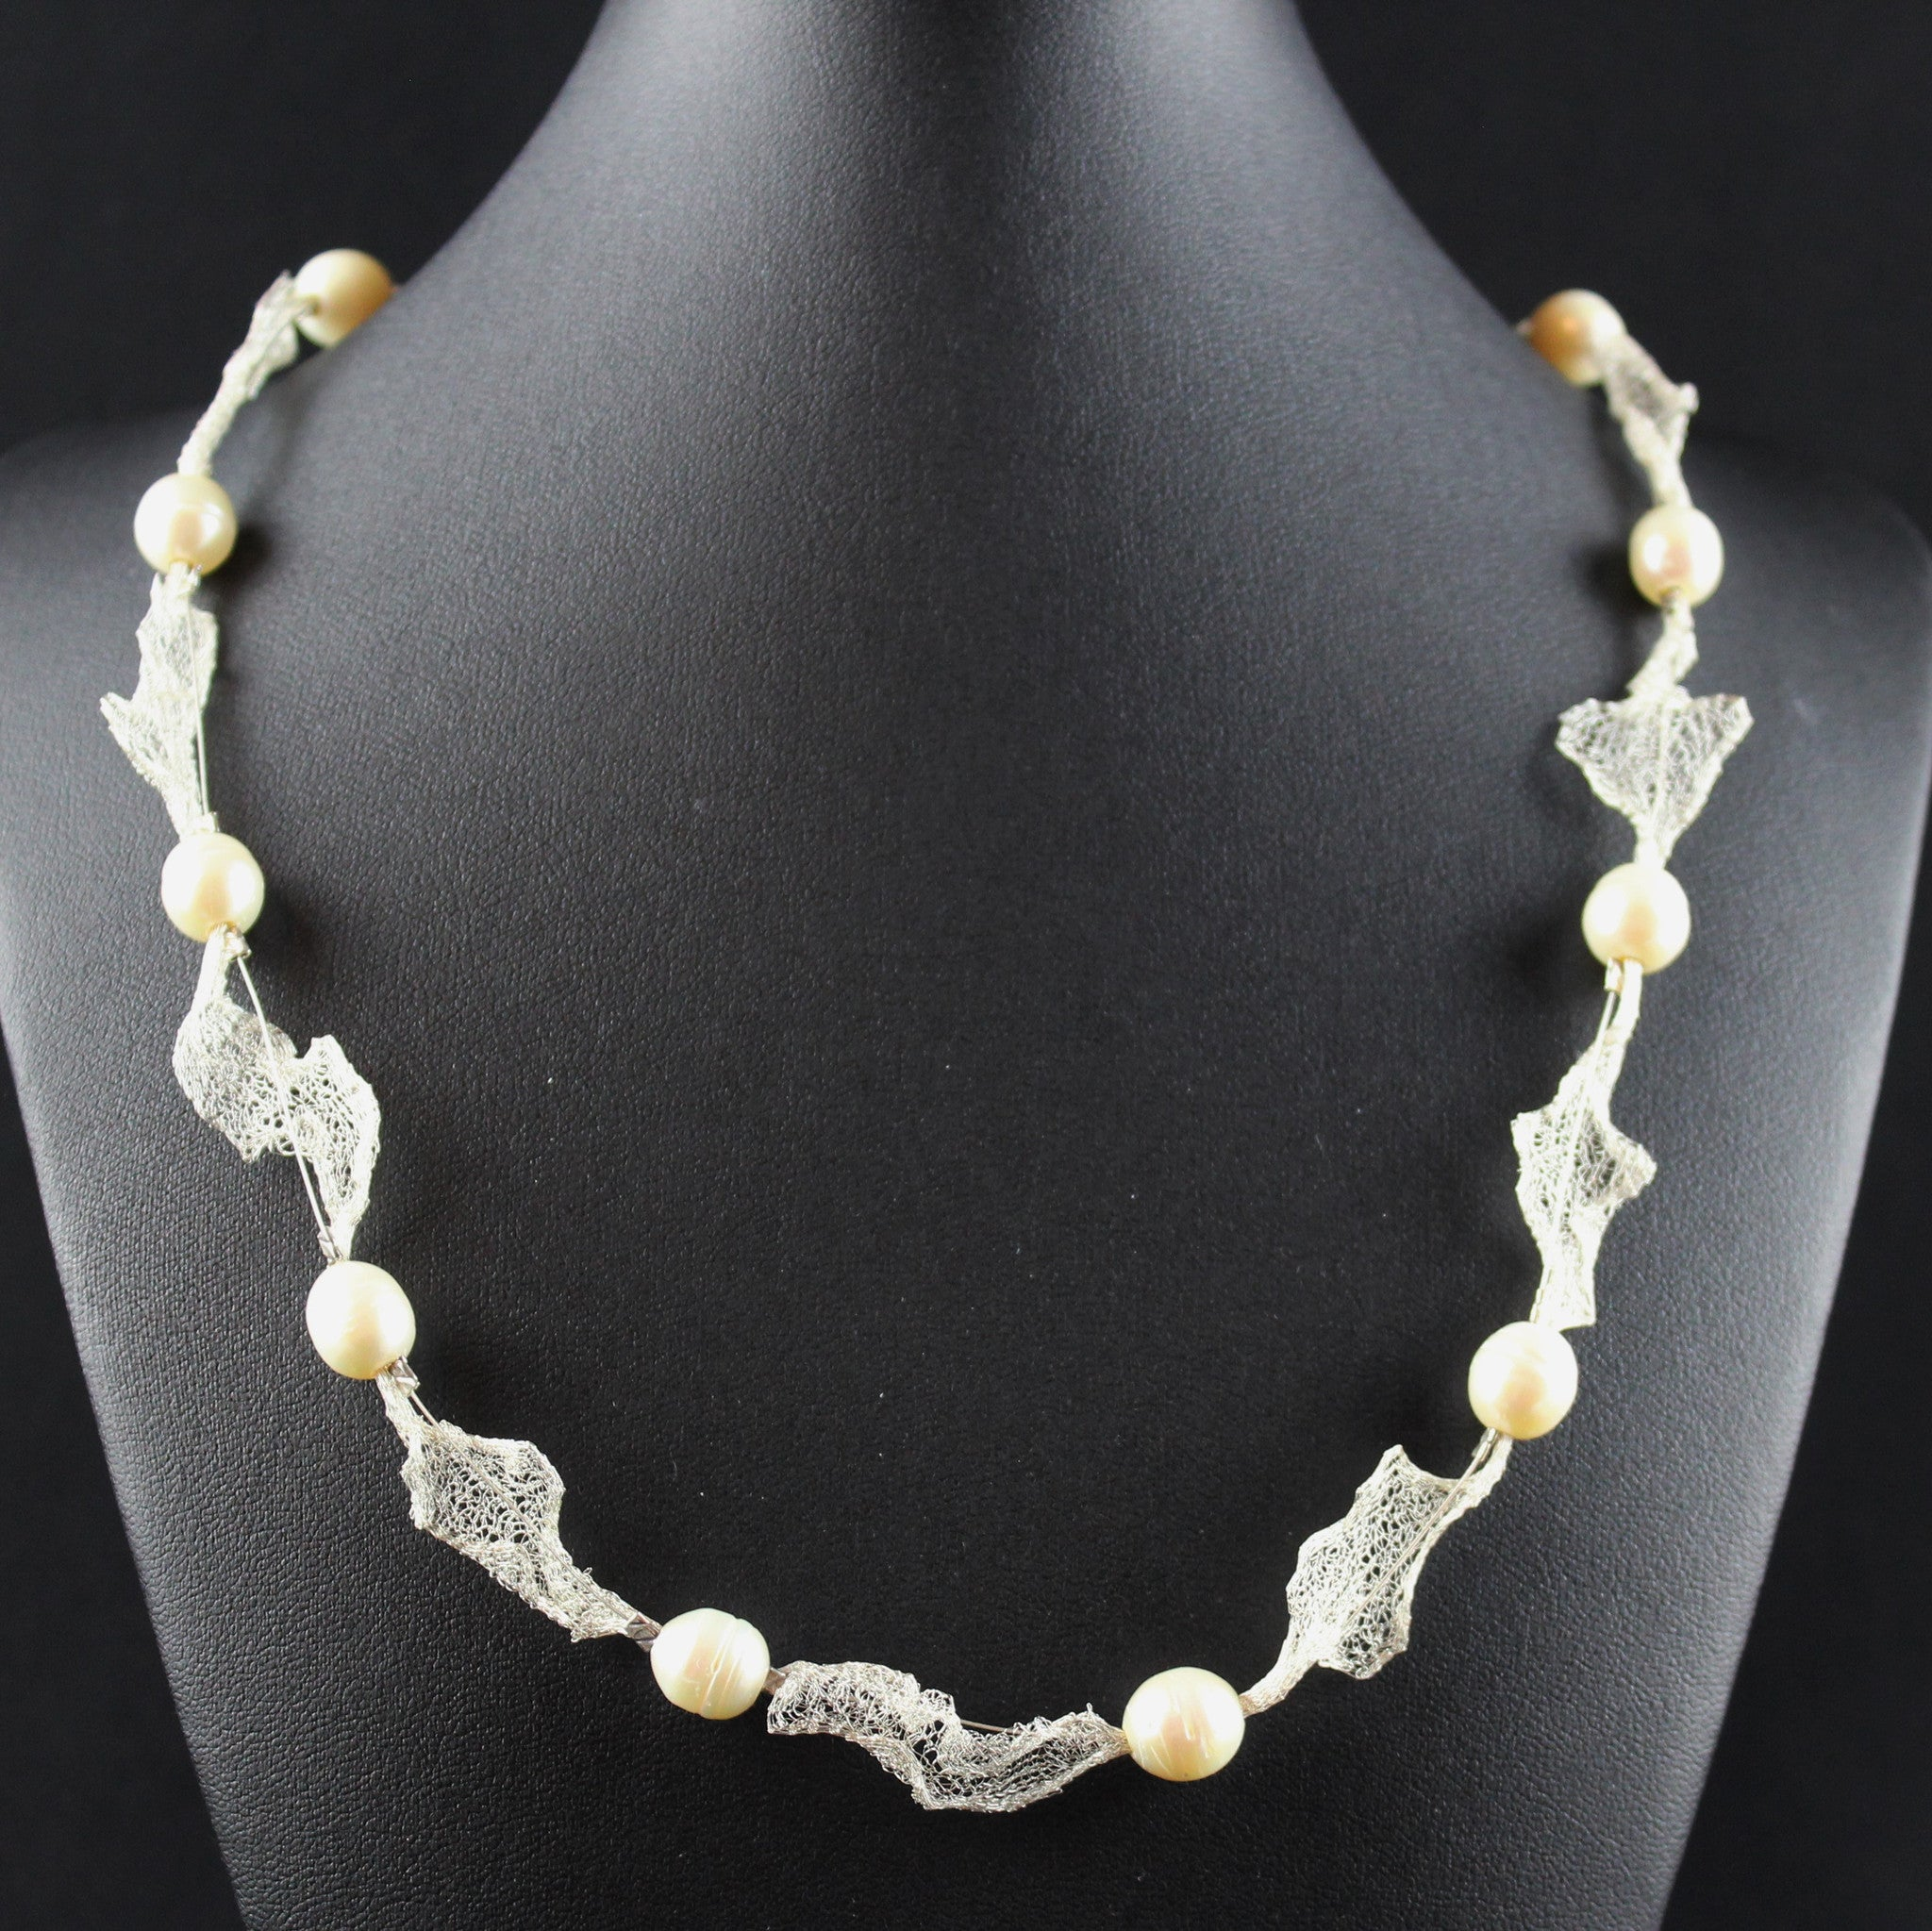 Susan M - Pearl & Mesh Necklace